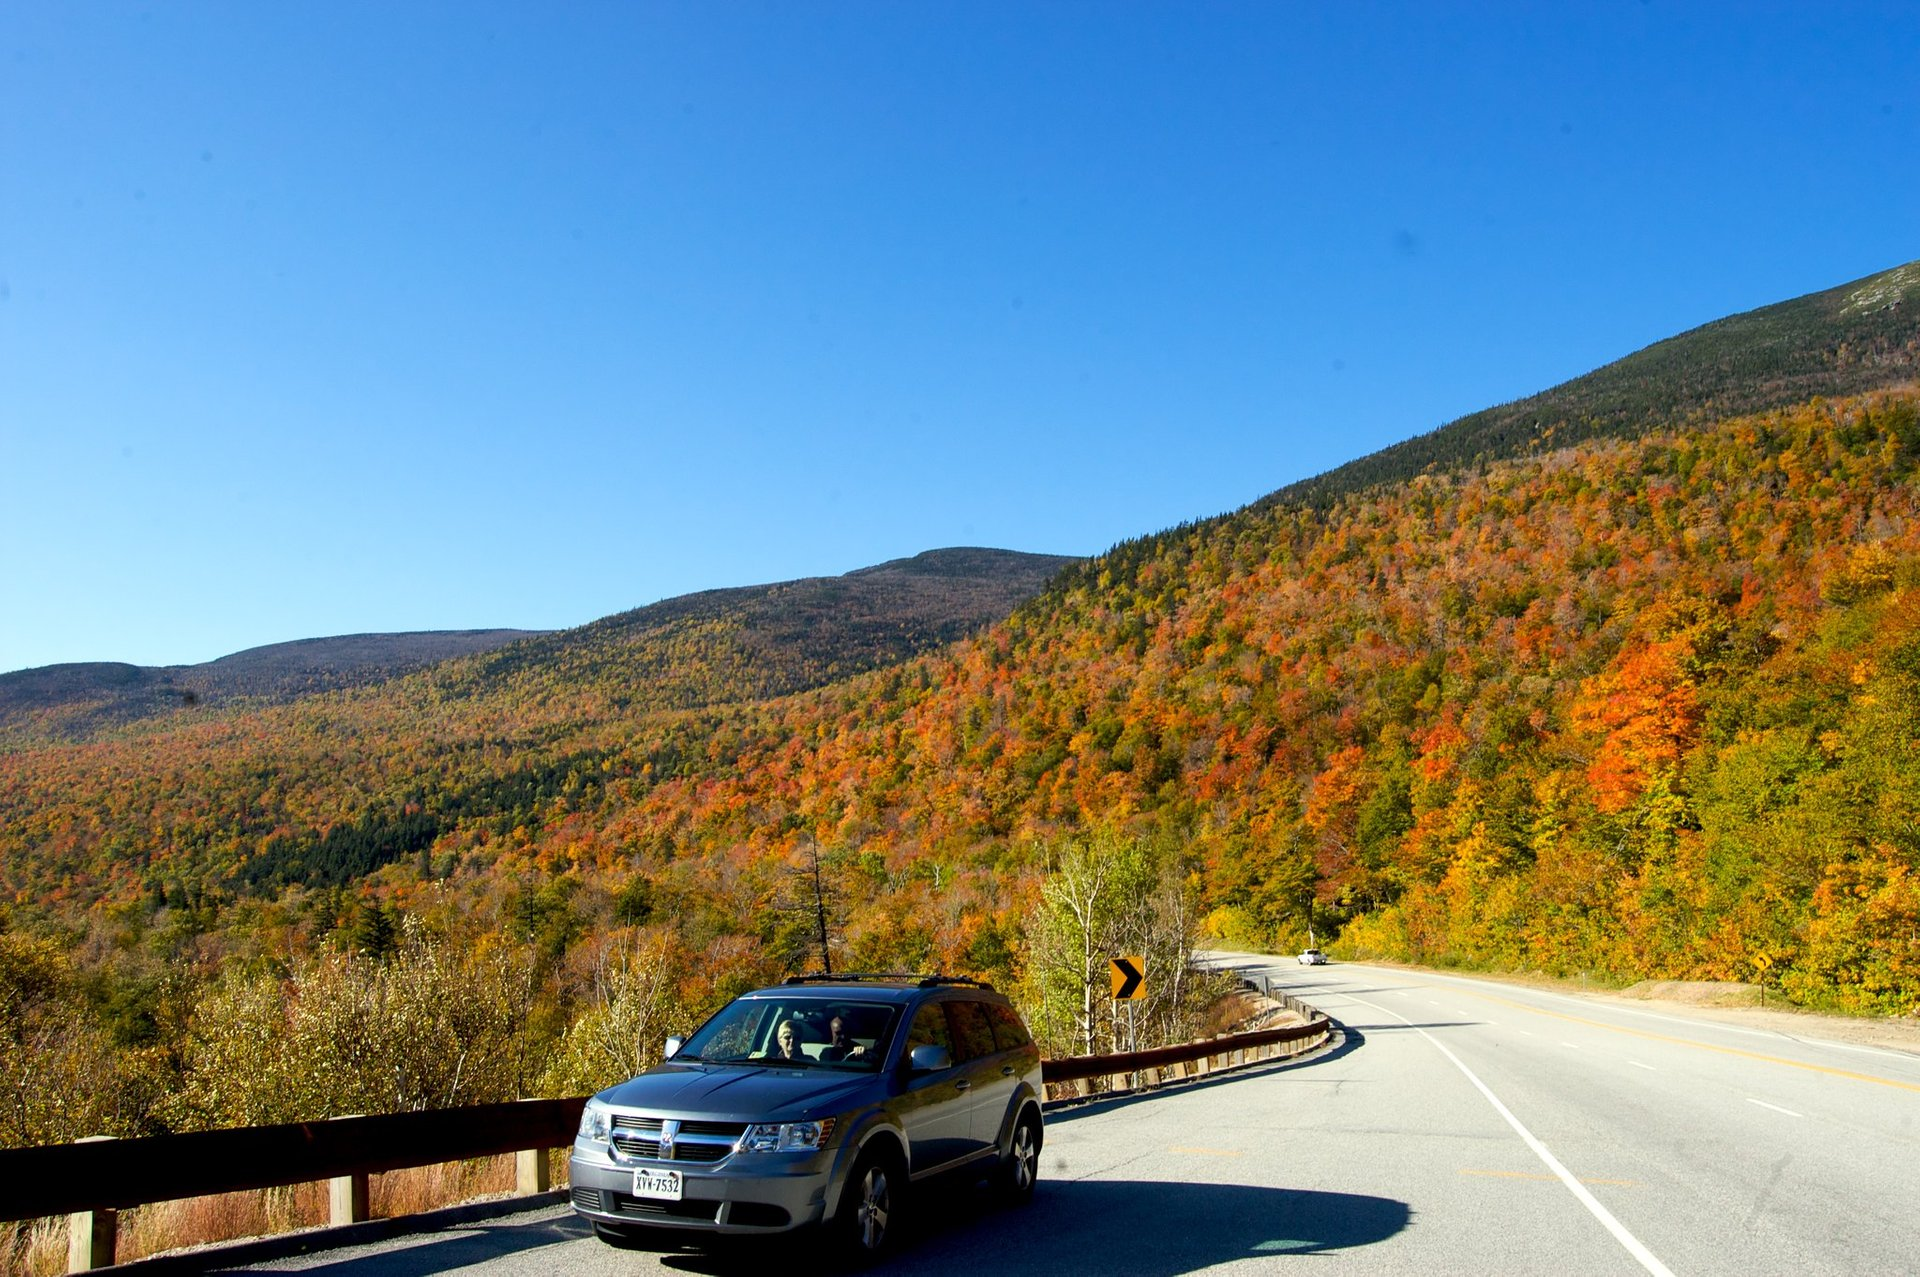 New Hampshire Fall Colors in New Hampshire - Best Season 2020